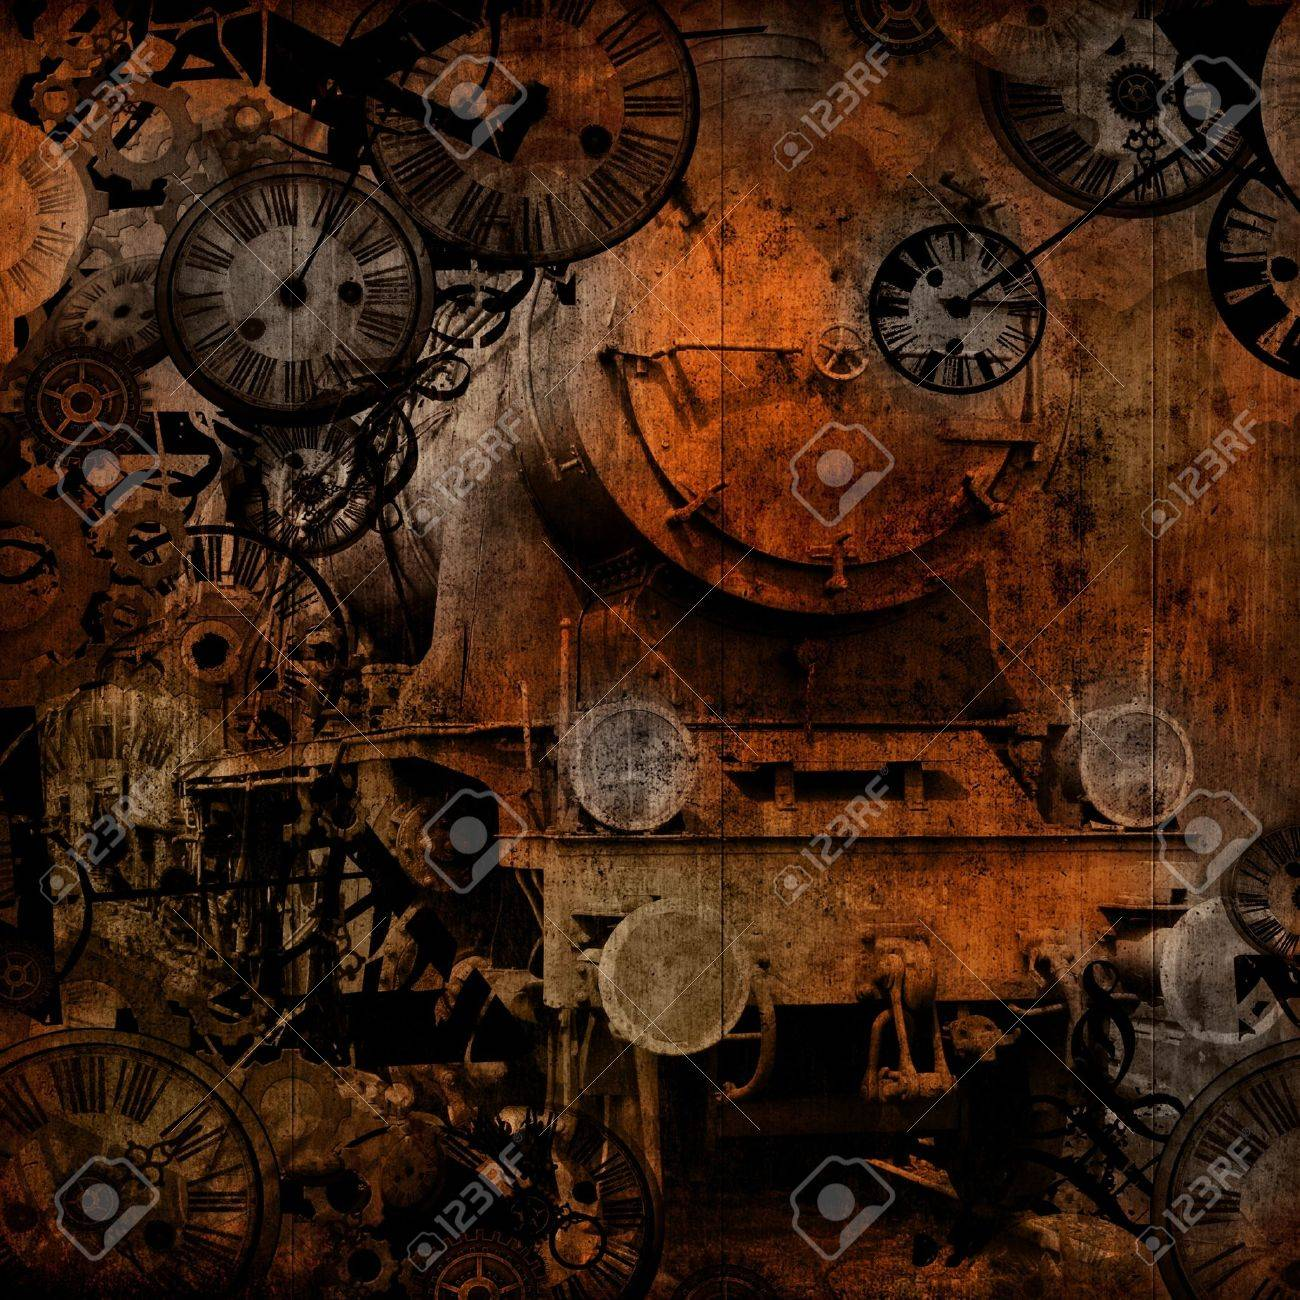 grunge vintage steam locomotive time machinebackground texture Stock Photo - 14530434